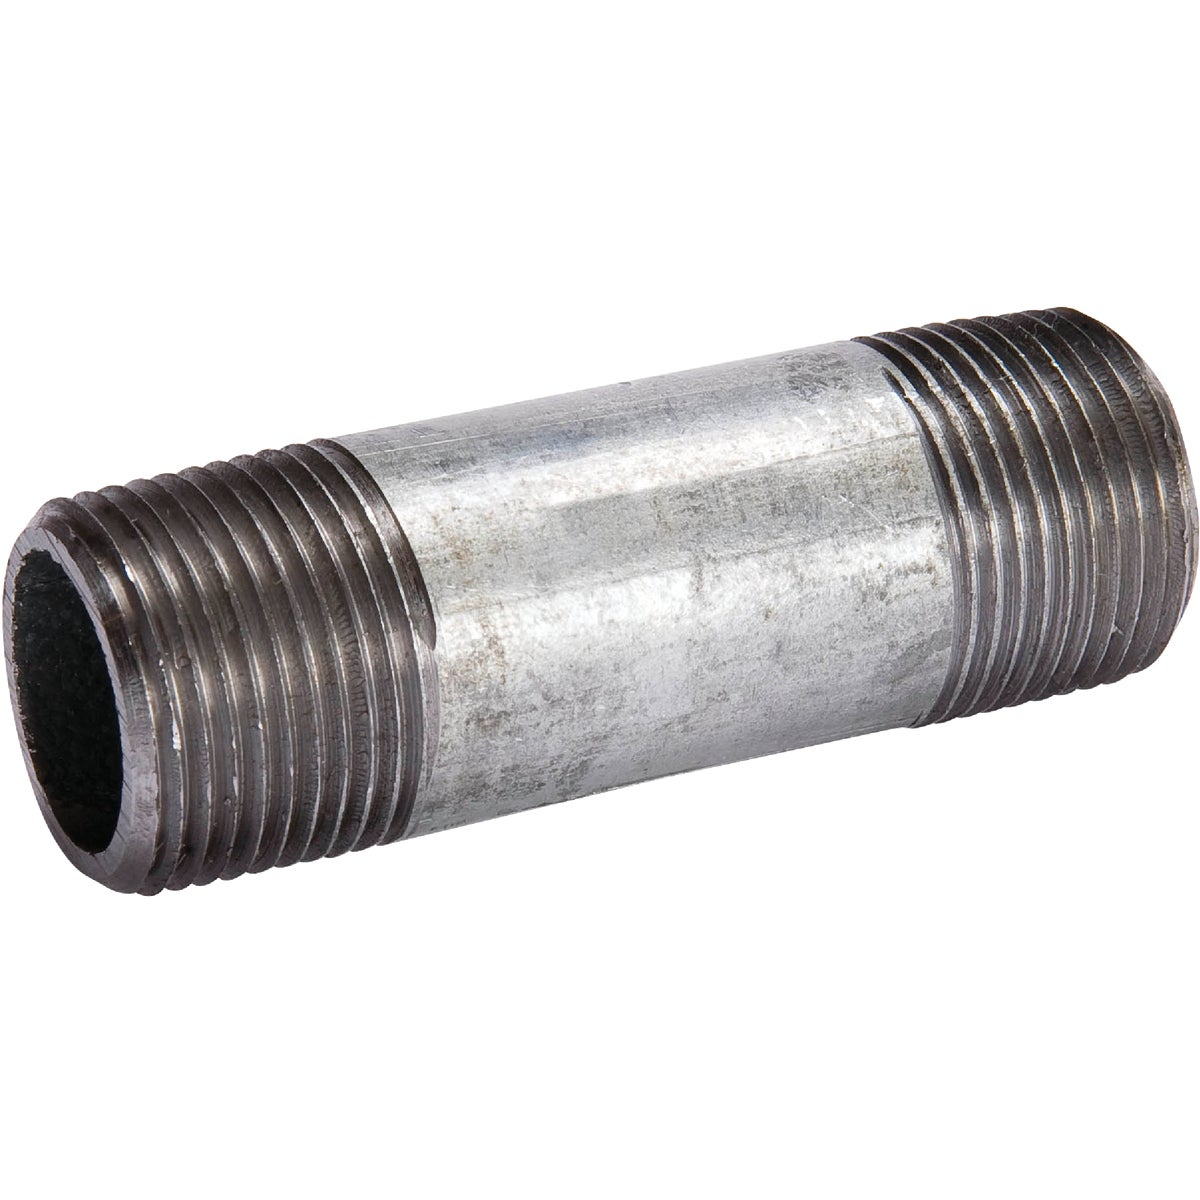 1/2X4-1/2 GALV NIPPLE - 10407 by Southland Pipe Nippl